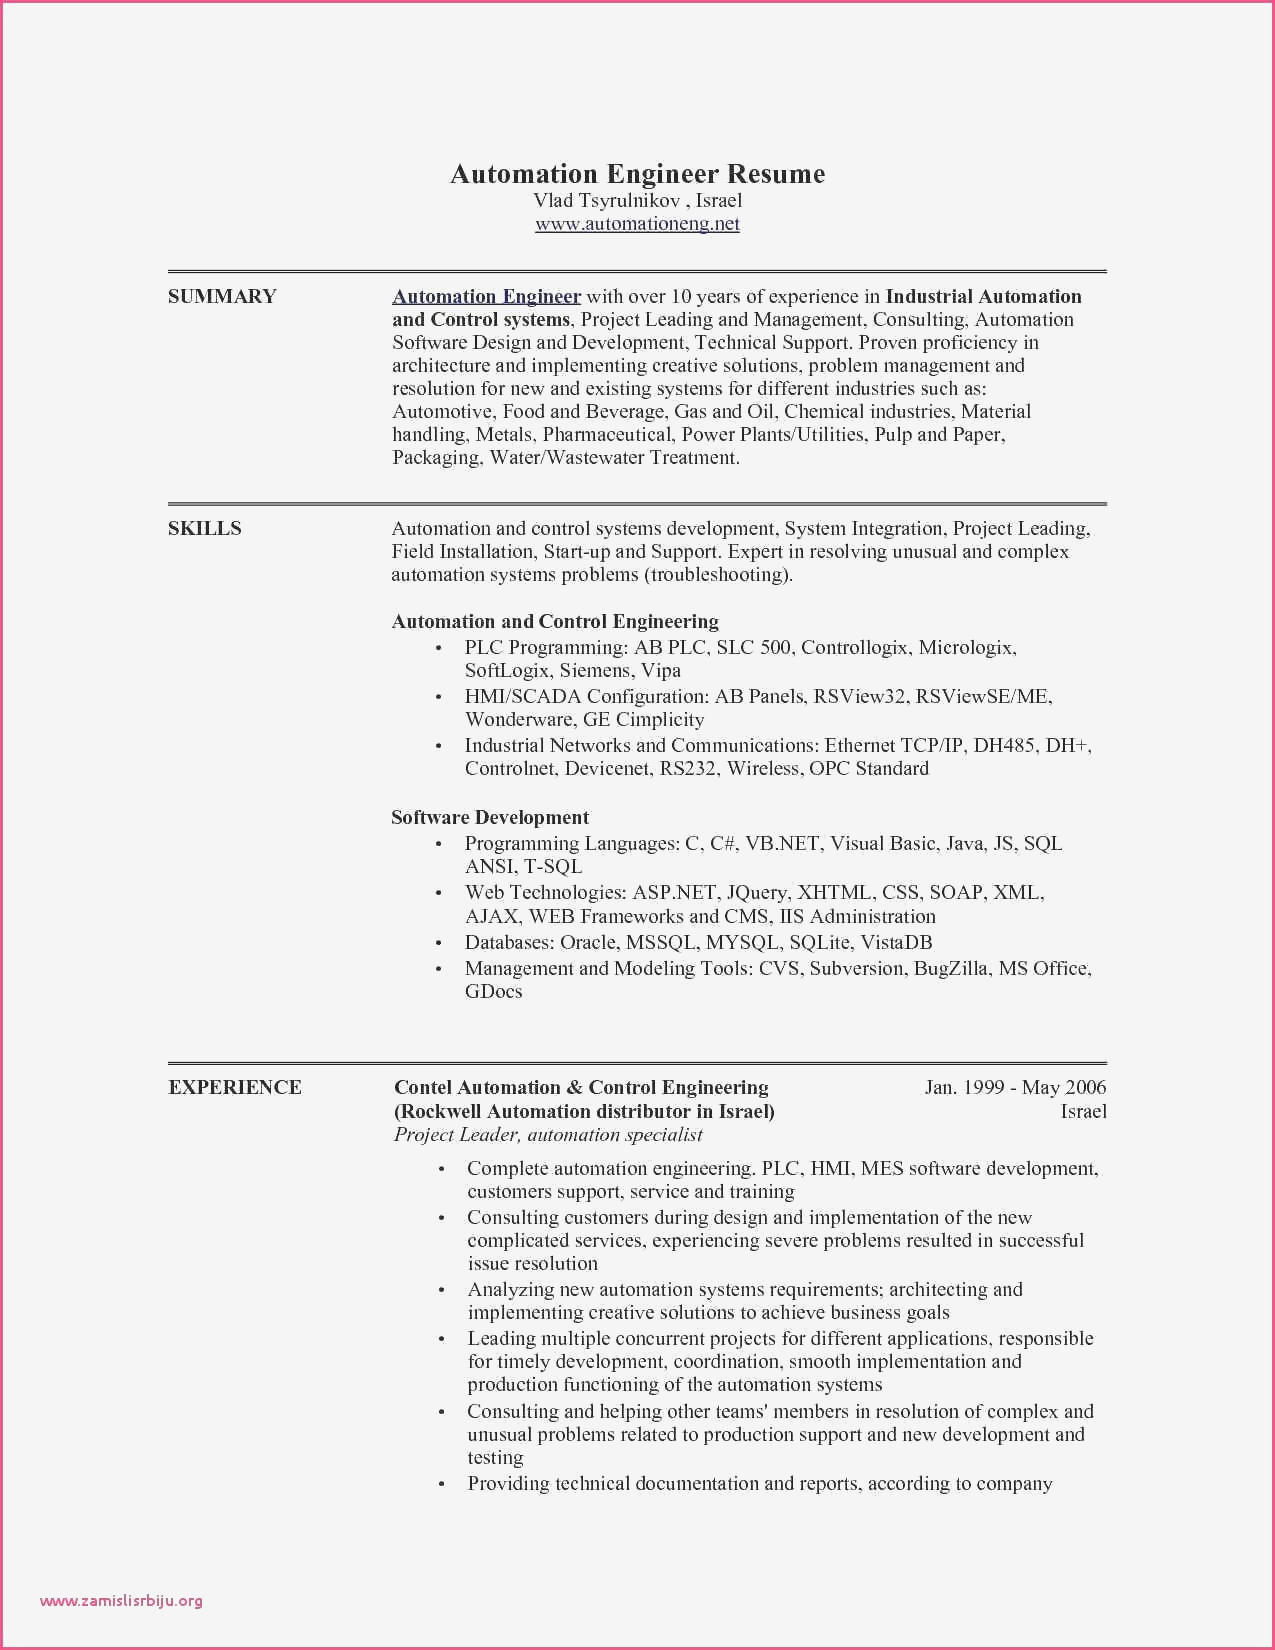 44 New Automation Engineer Resume with Graphics